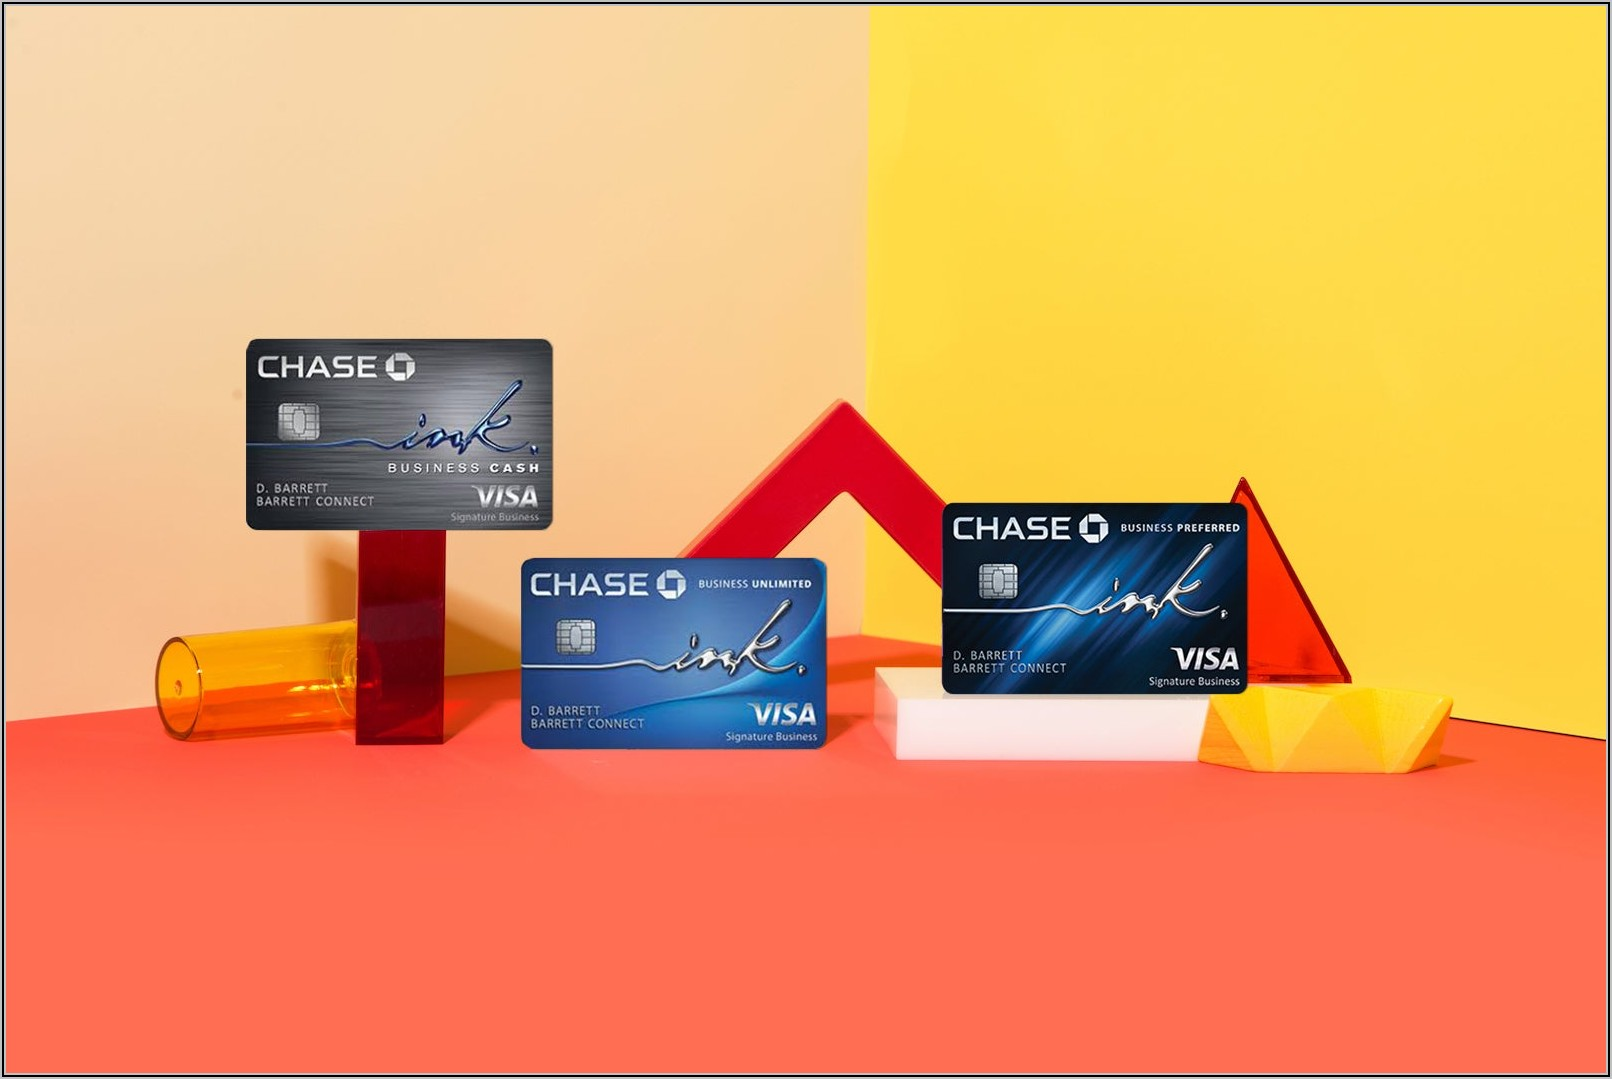 Chase Ink Business Cash Gift Cards